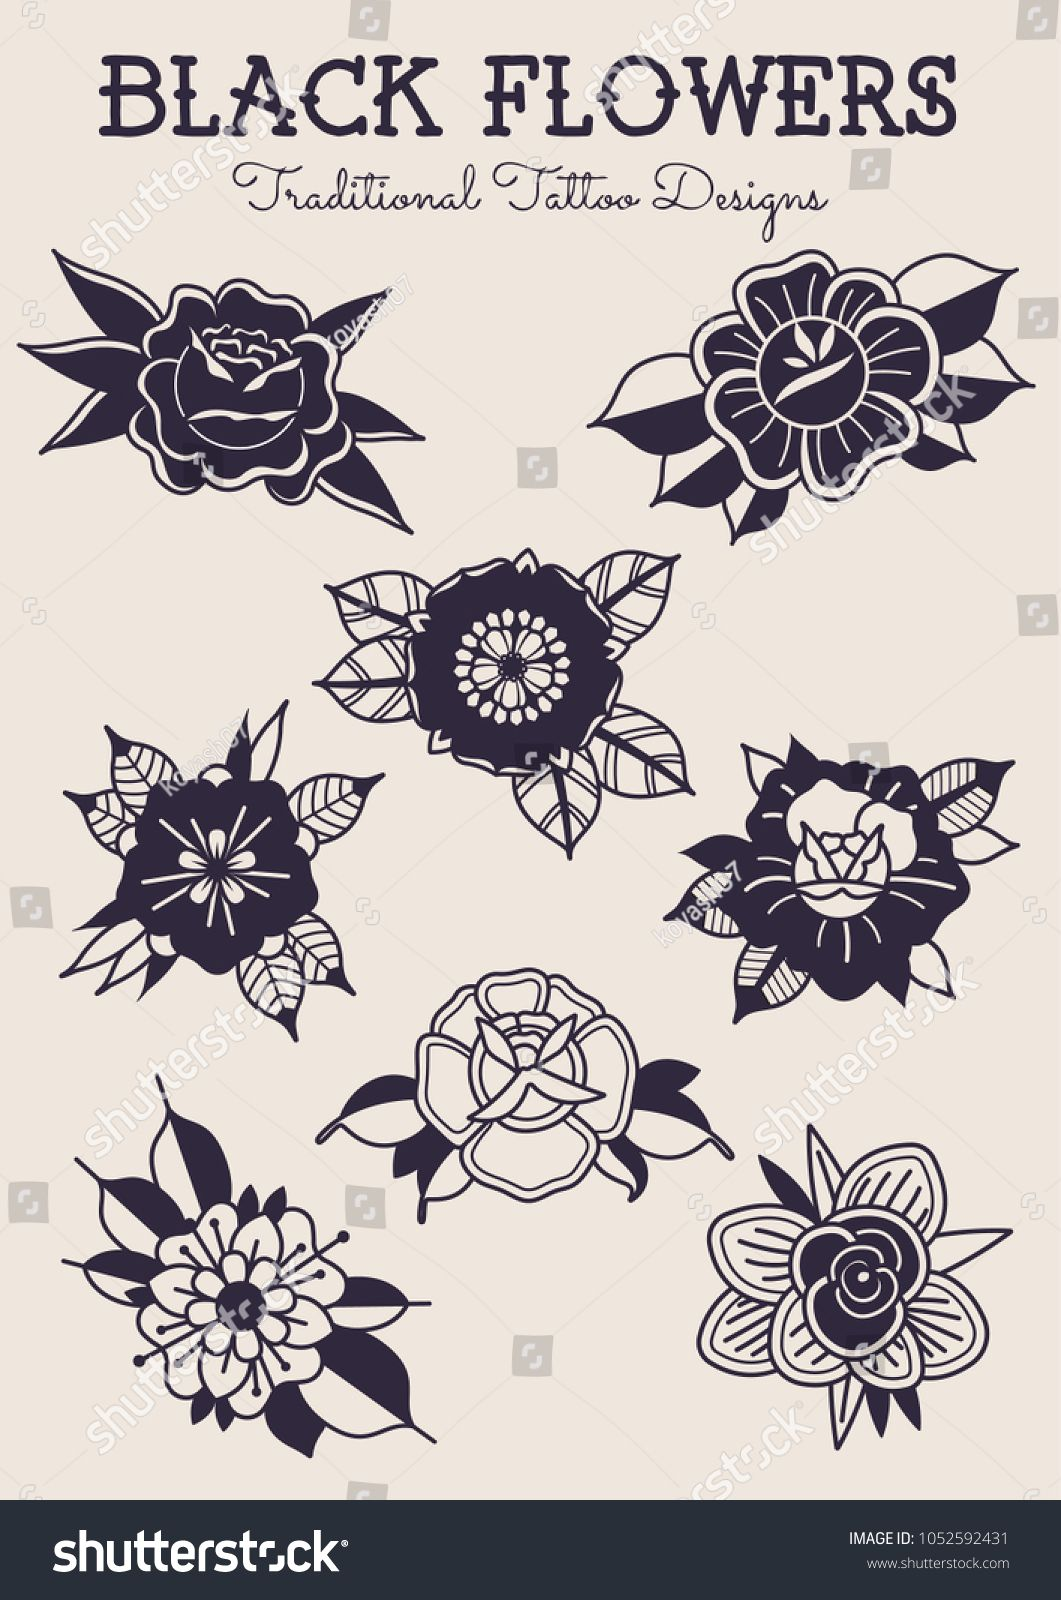 Black Flowers Traditional Tattoo Designs Stock Vector